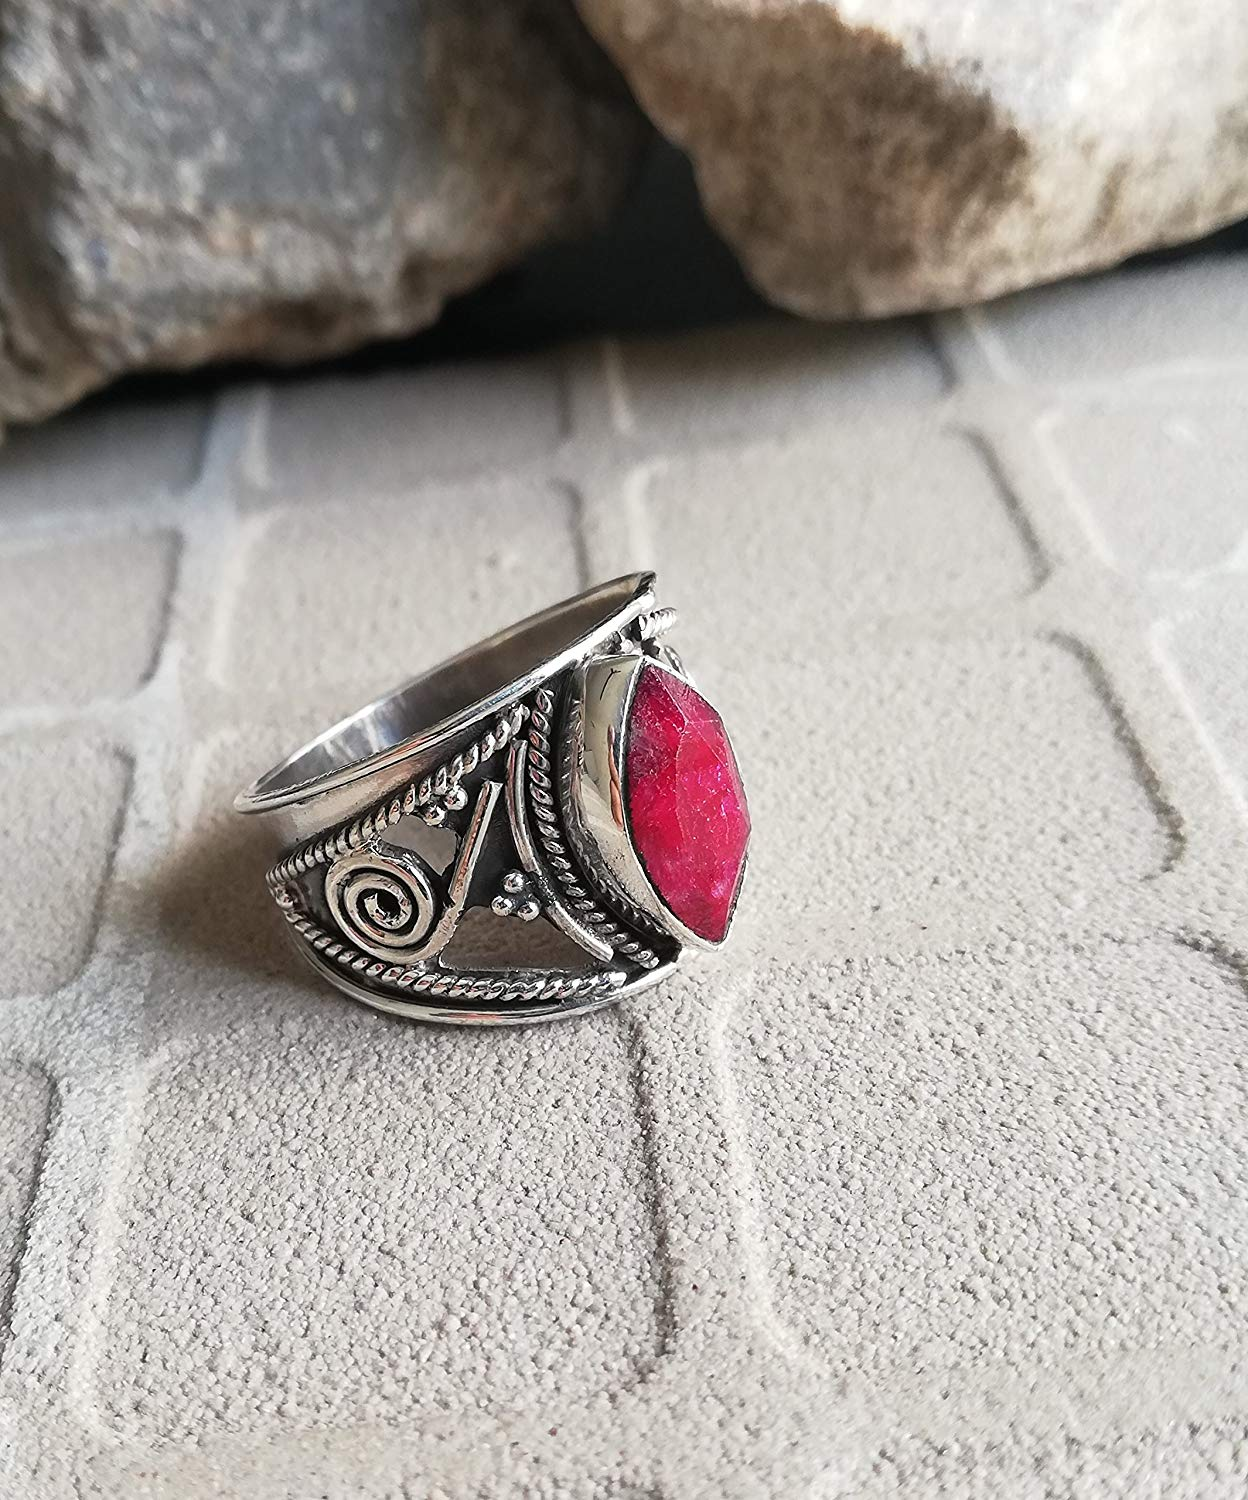 Ruby Ring, 925 Sterling Silver, Bezel Ring, Wide Band Ring, Statement Ring, Engagement Ring, Jewelry For Her, Midi Ring, Antique Ring, Vintage Style Ring, Victorian Ring, Jewellery, US All Size Ring